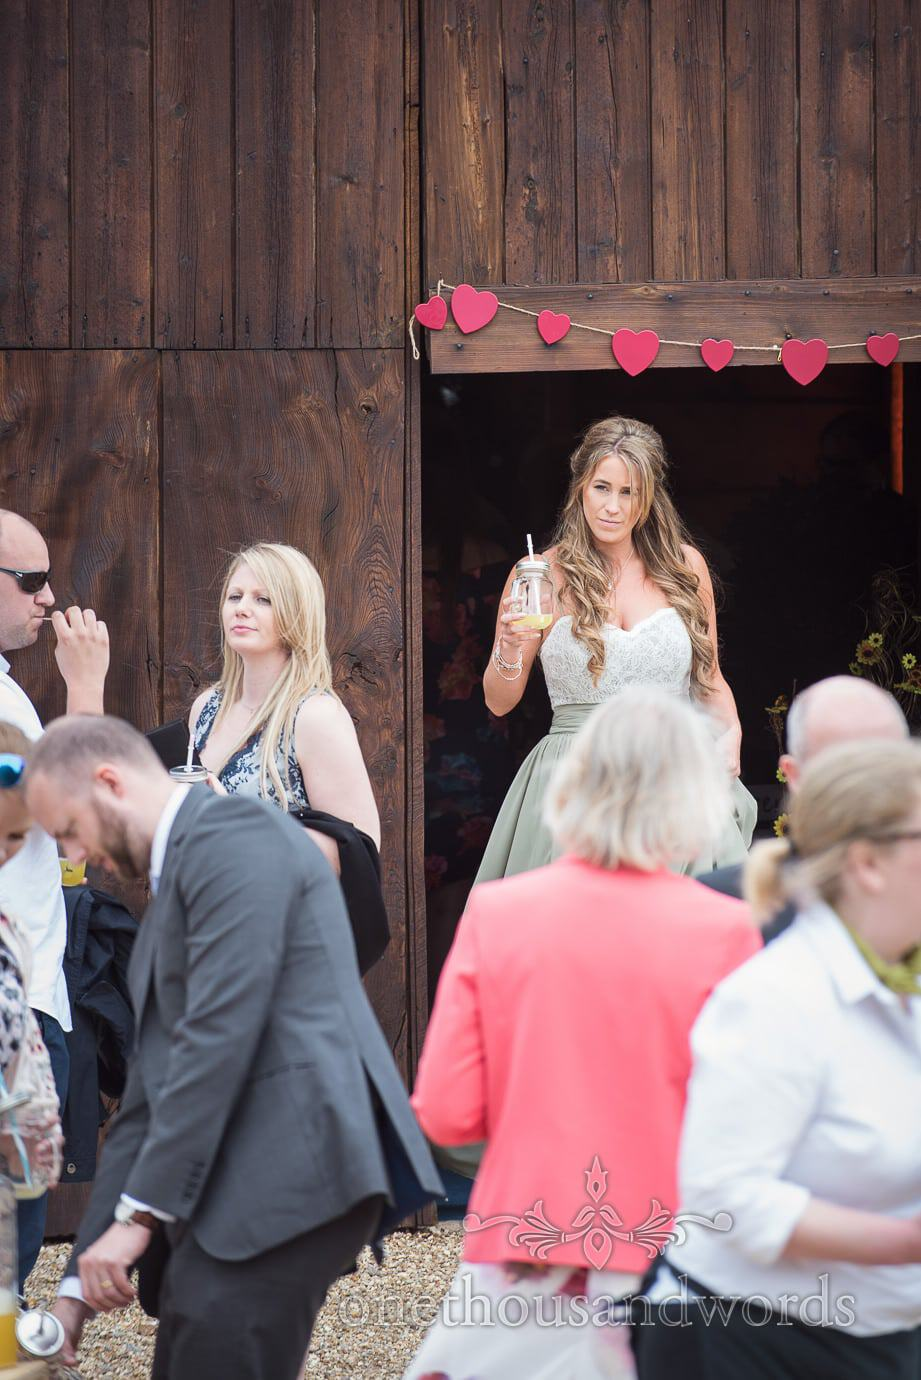 Beautiful bridesmaid exits rustic wedding wooden barn door with red love heart bunting